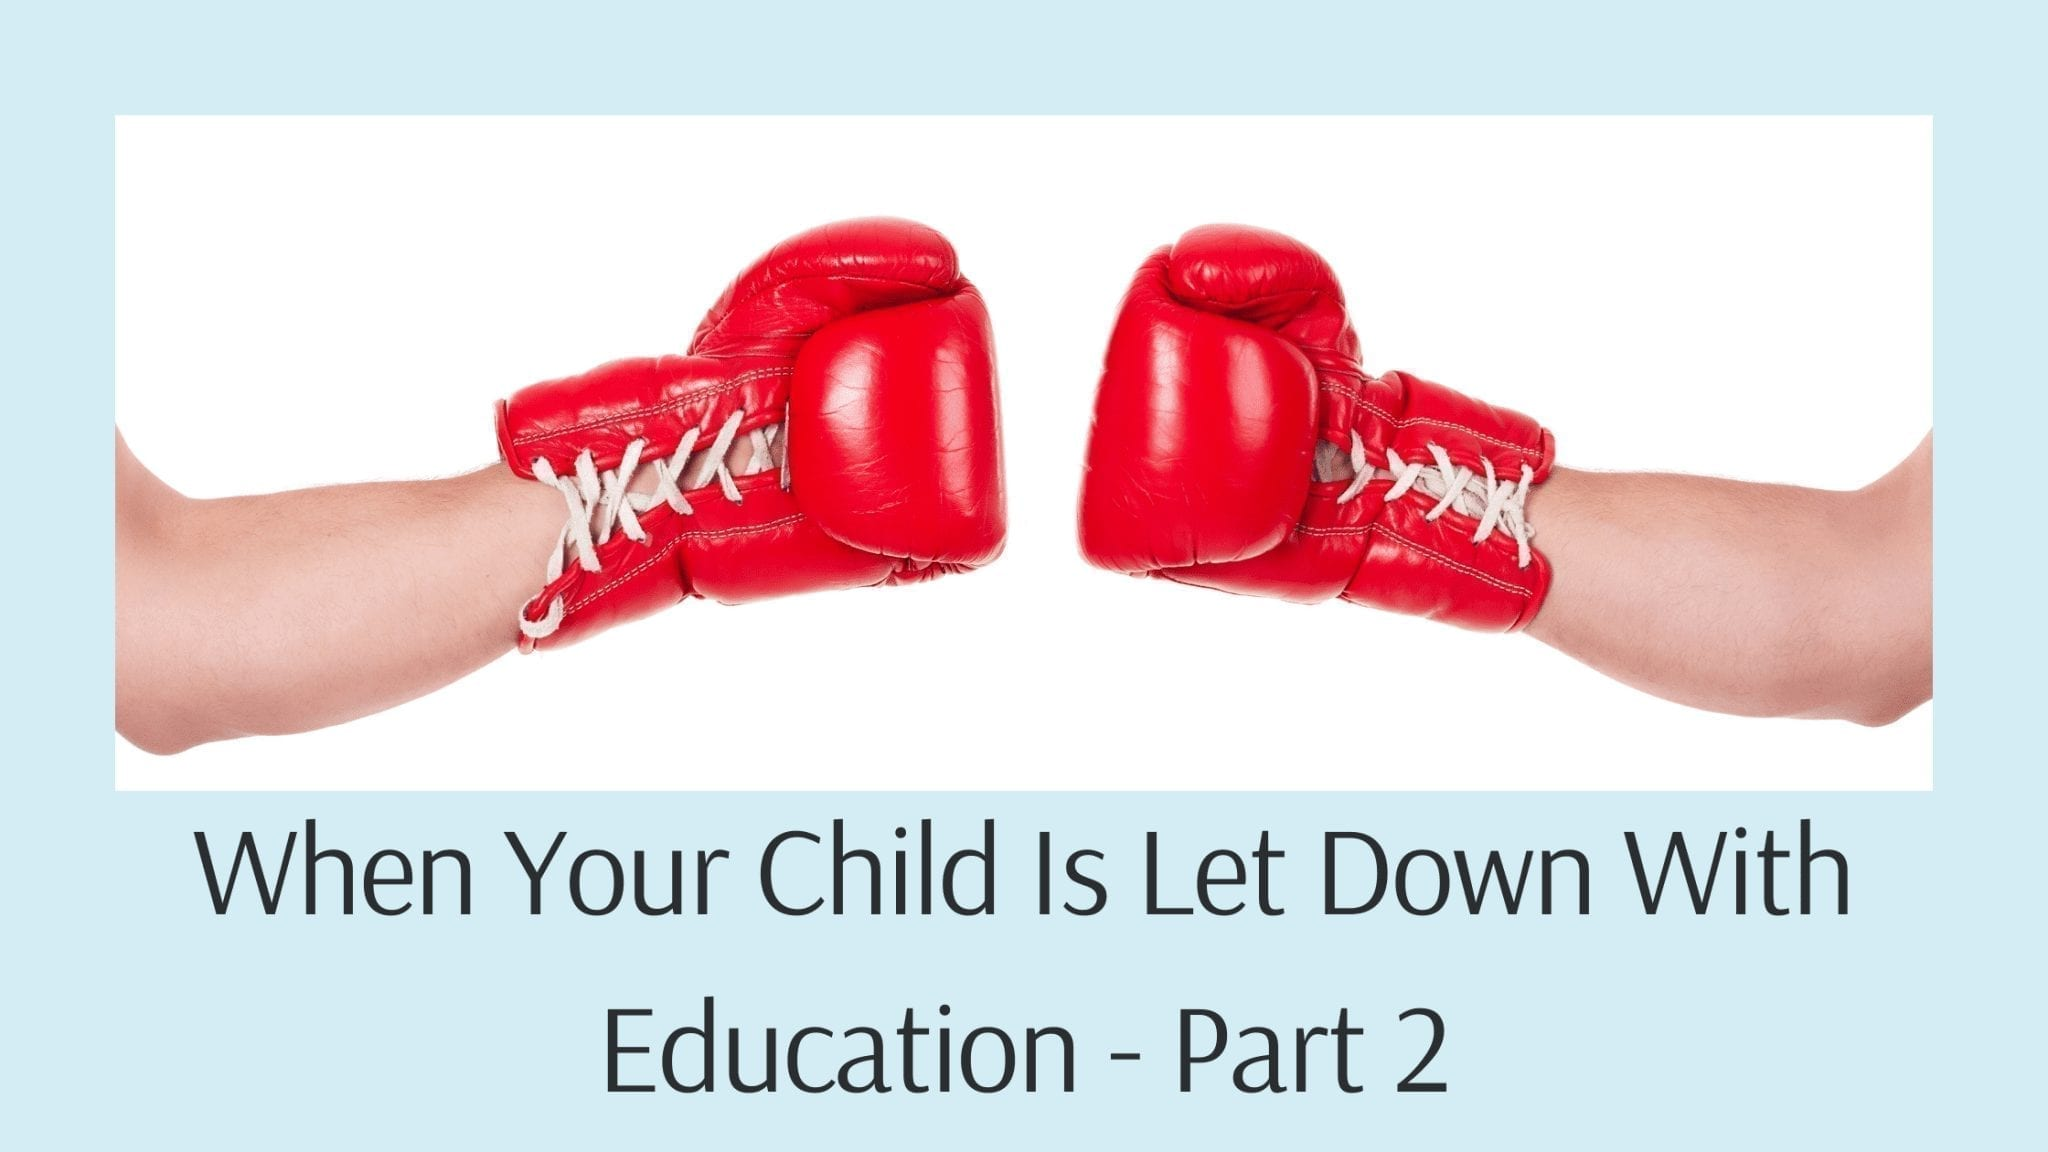 When Your Child Is Let Down With Education - Part 2